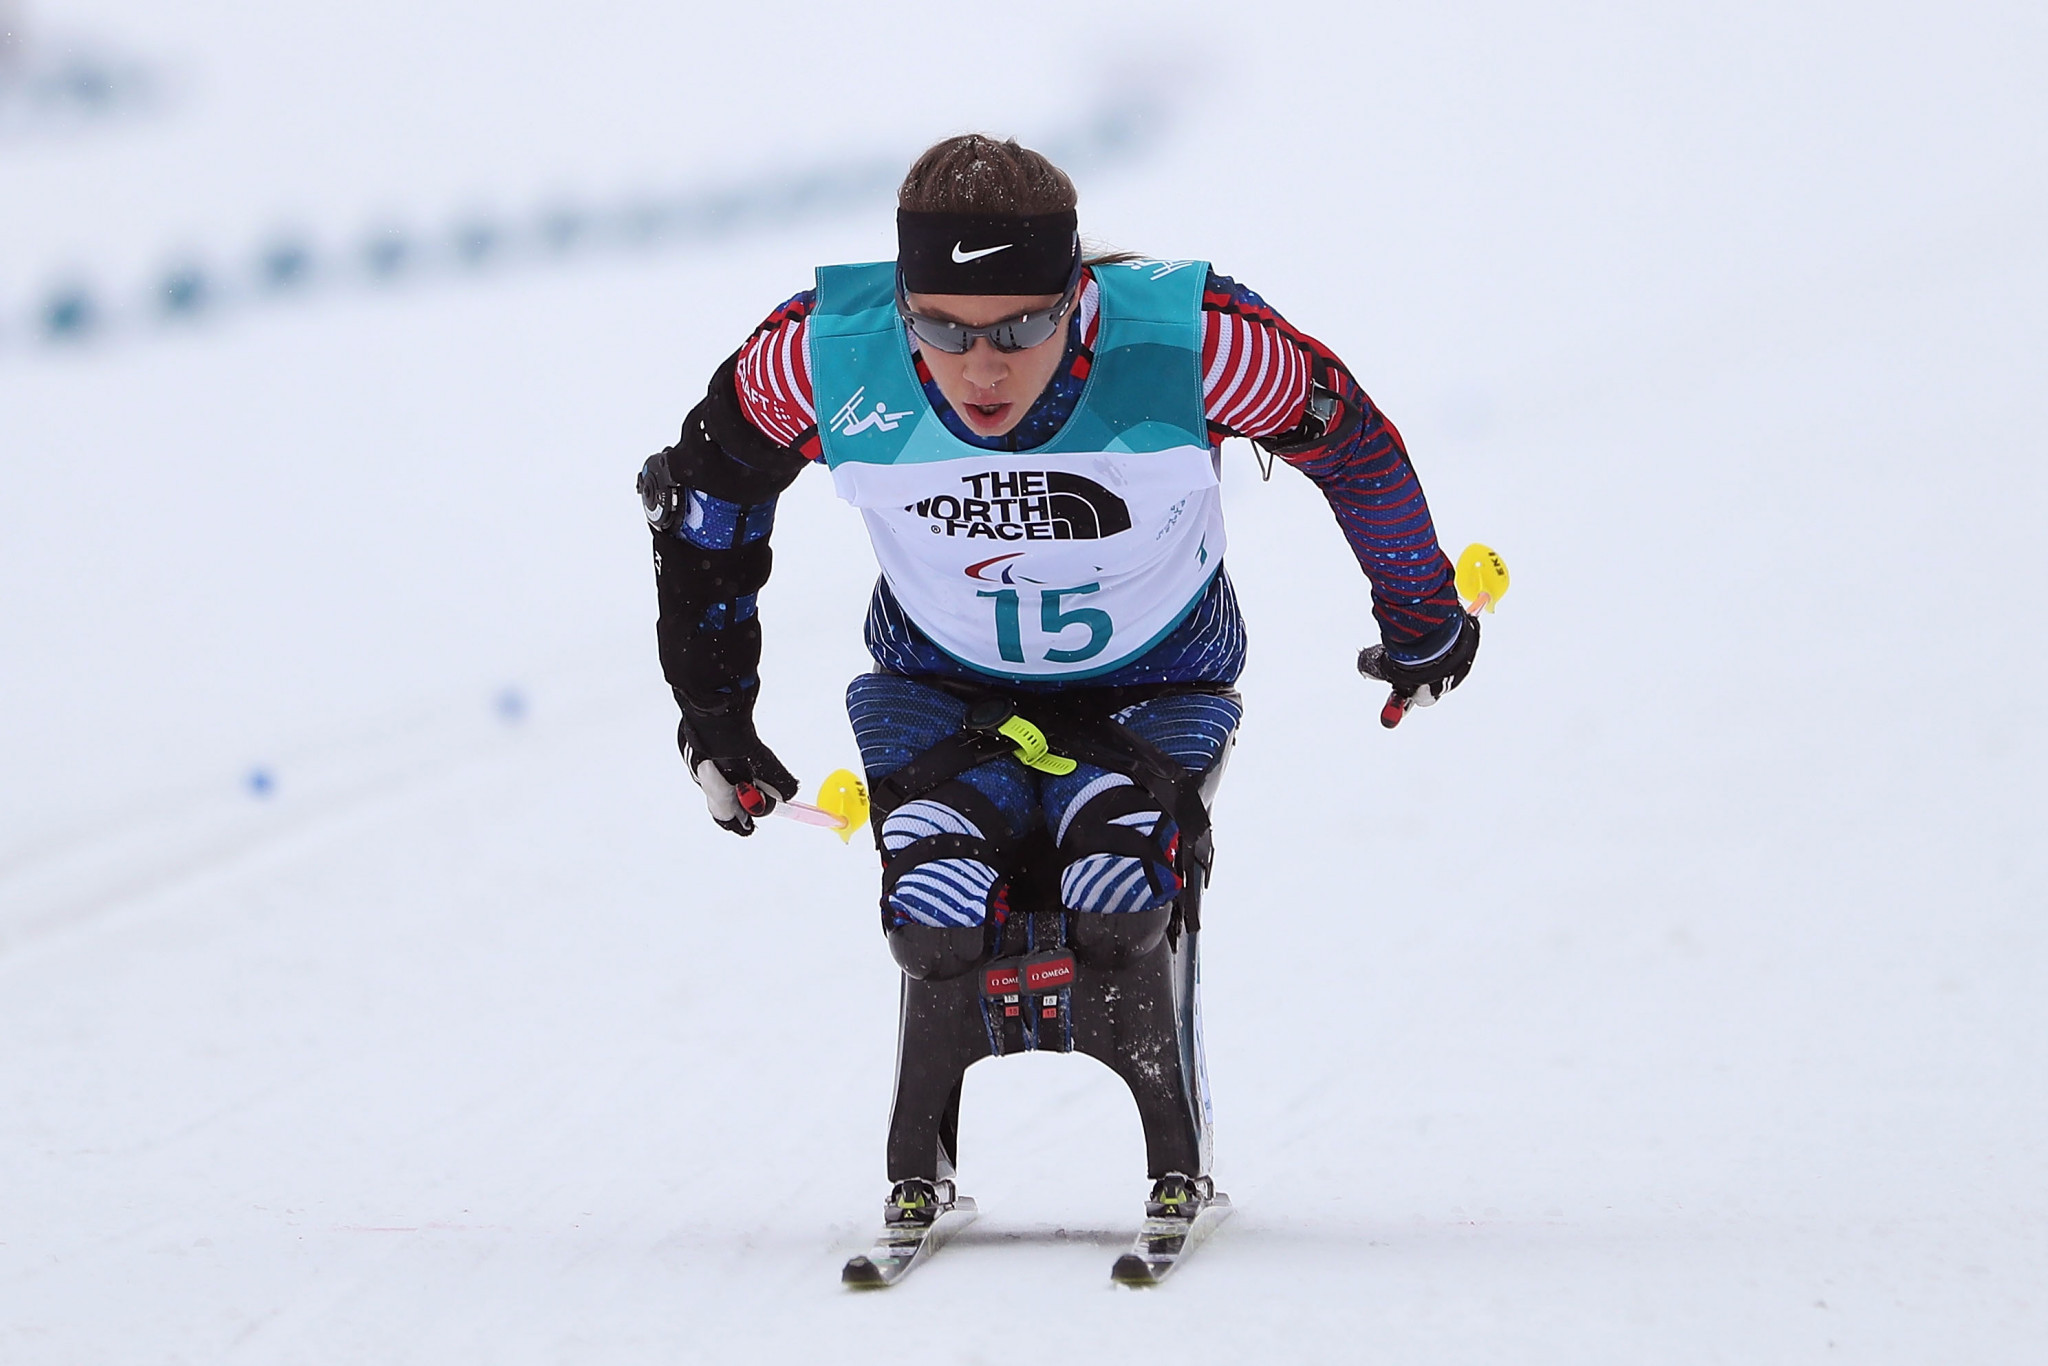 Masters and Lekomtsev finish undefeated at World Para Nordic Skiing World Cup in Planica